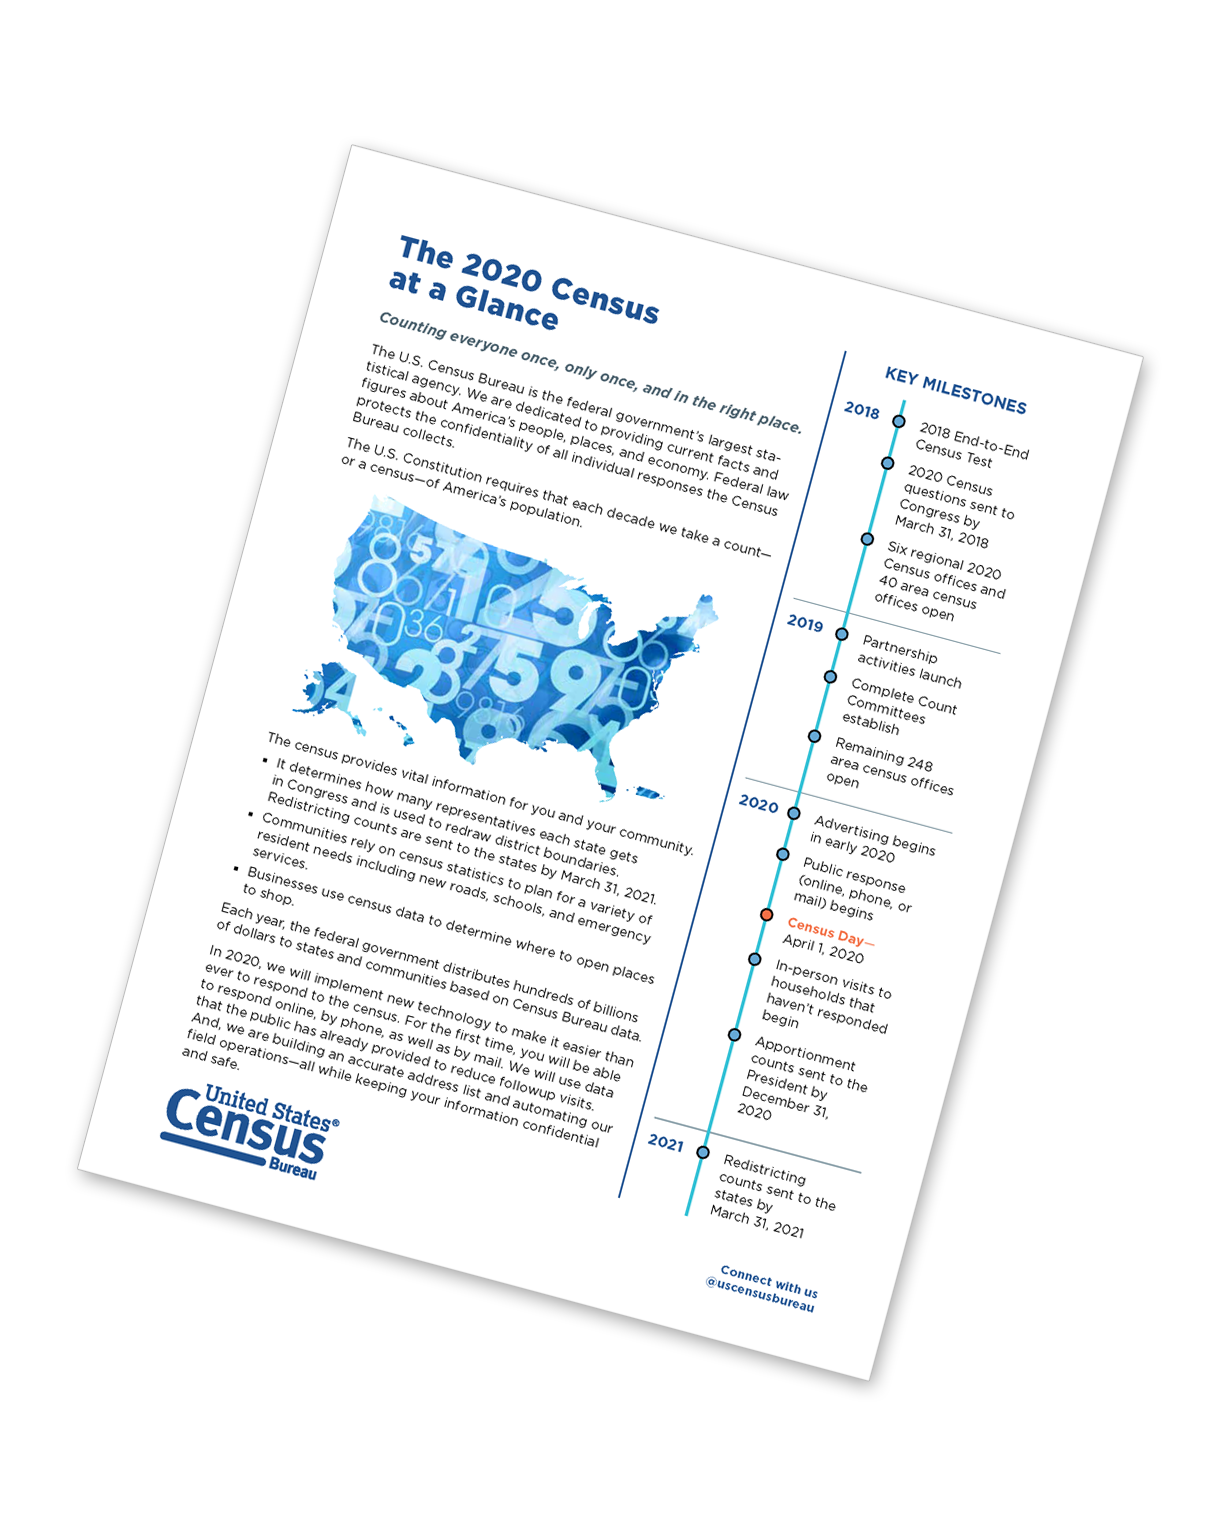 2020 Census at a glance